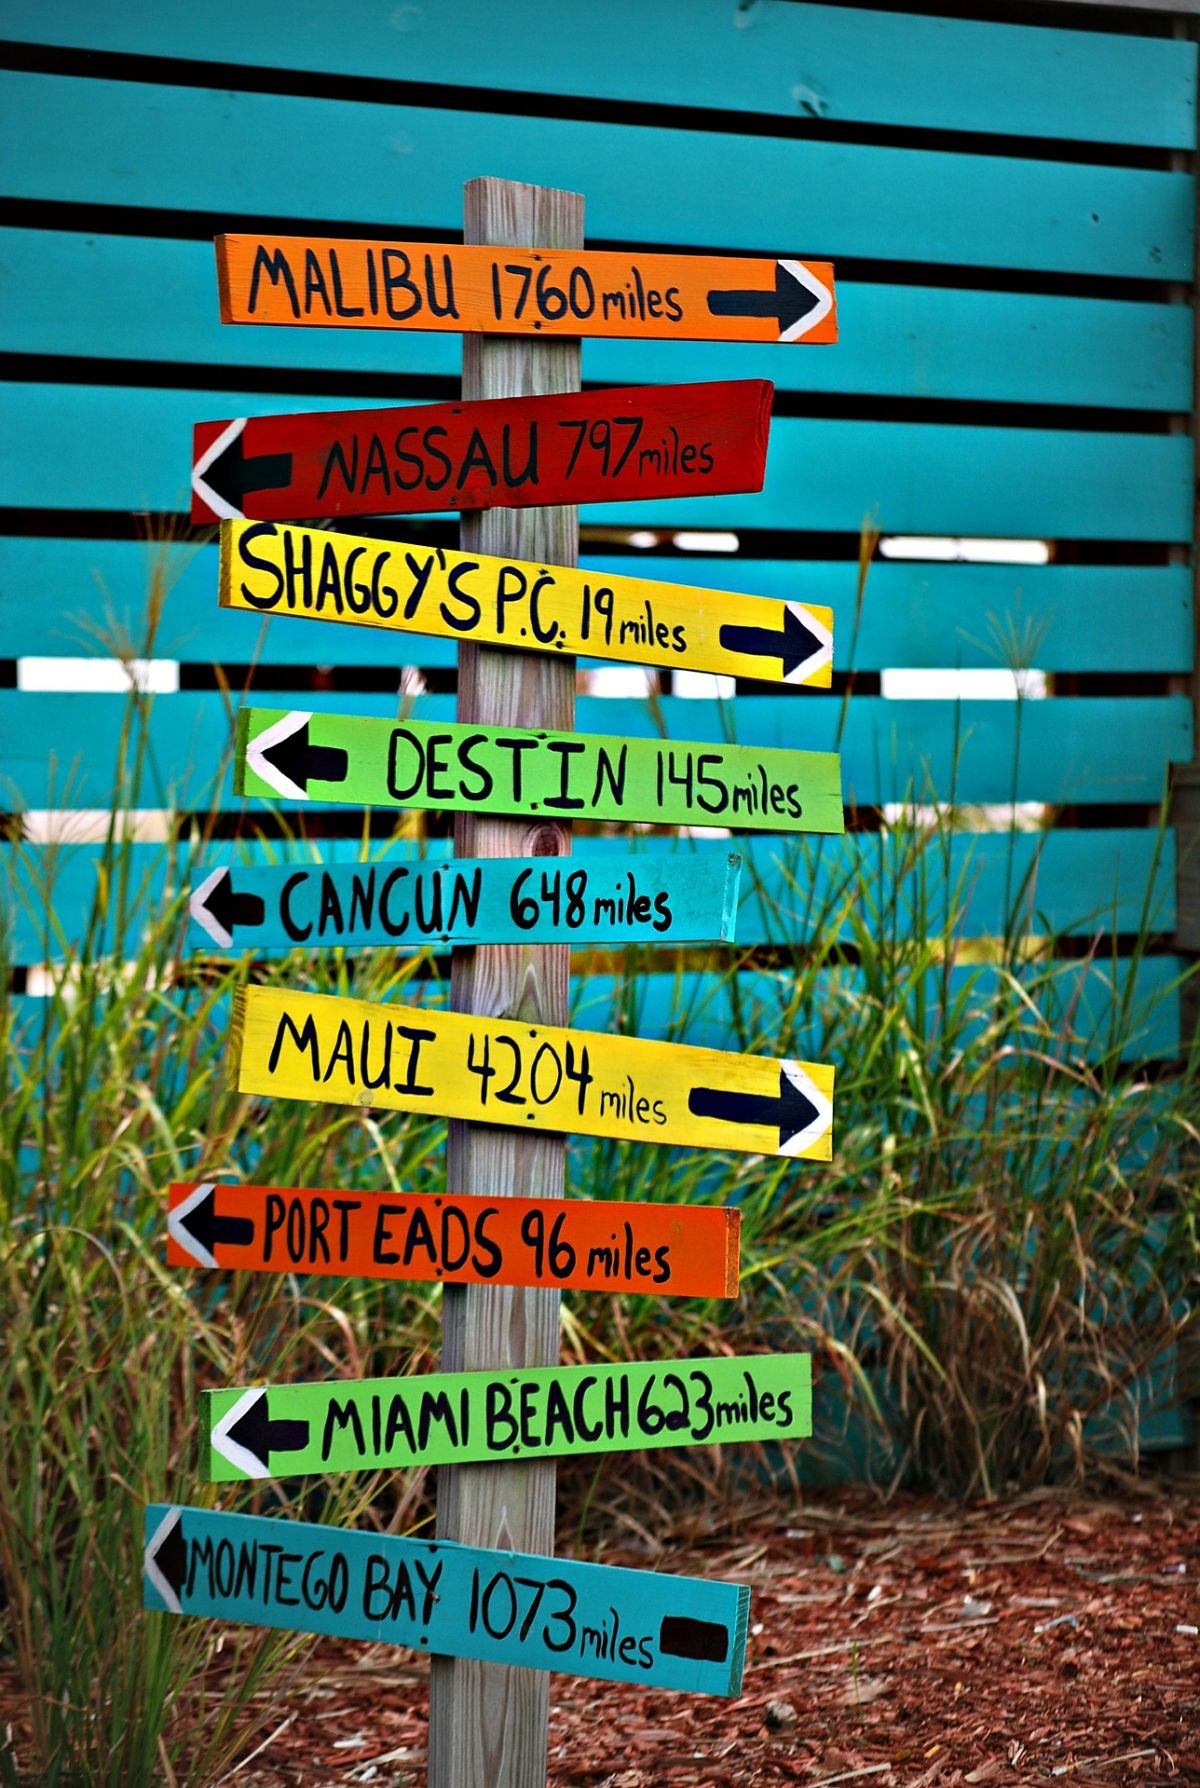 Signs, directions, navigation, colorful